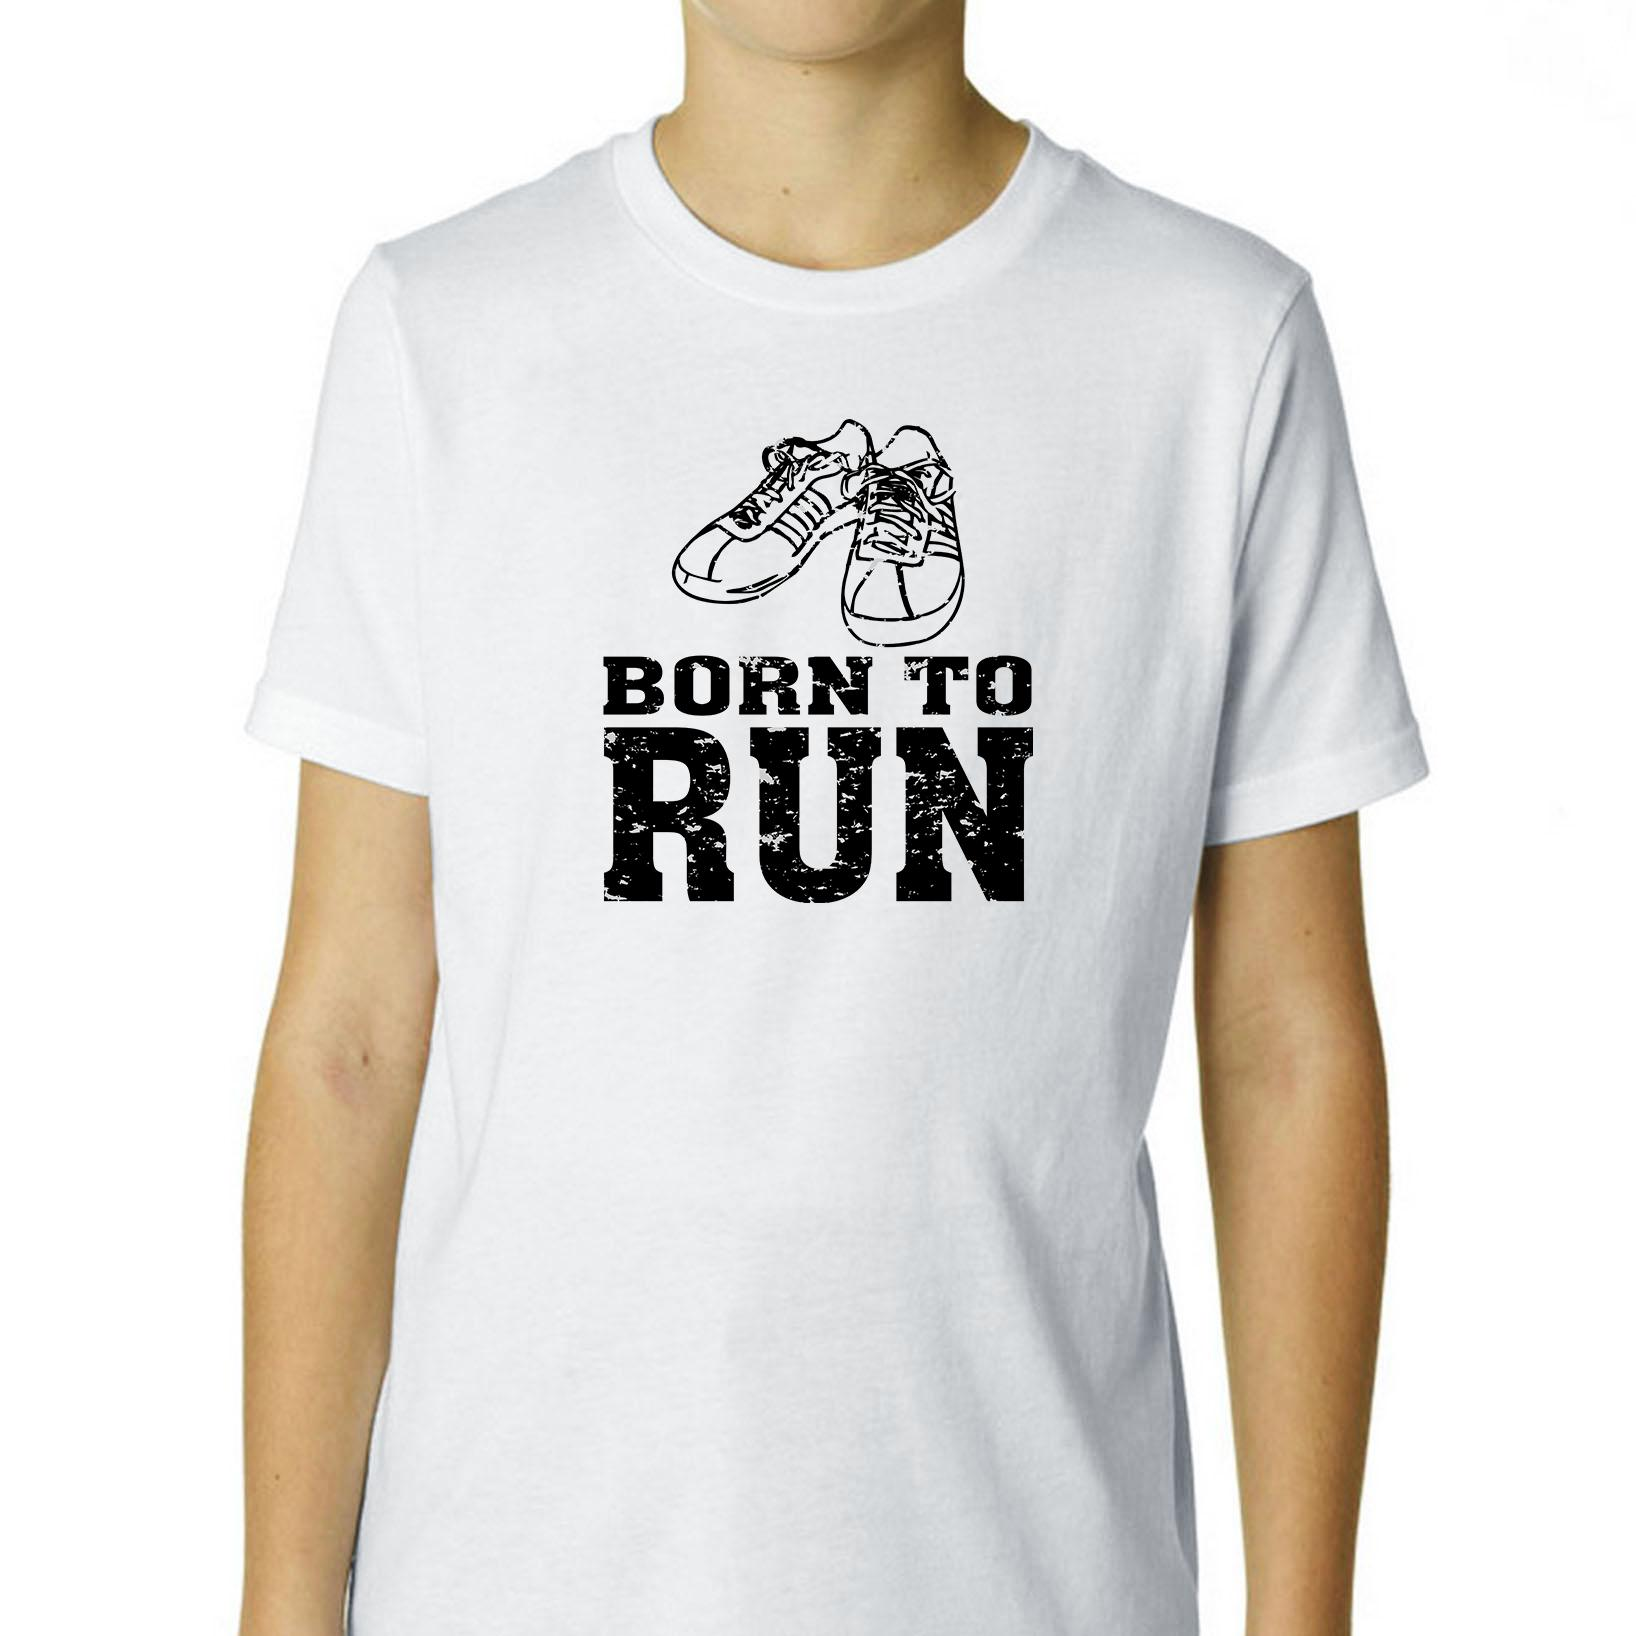 Born to Run - Old School Classic Running Shoes Boy's Cotton Youth T-Shirt